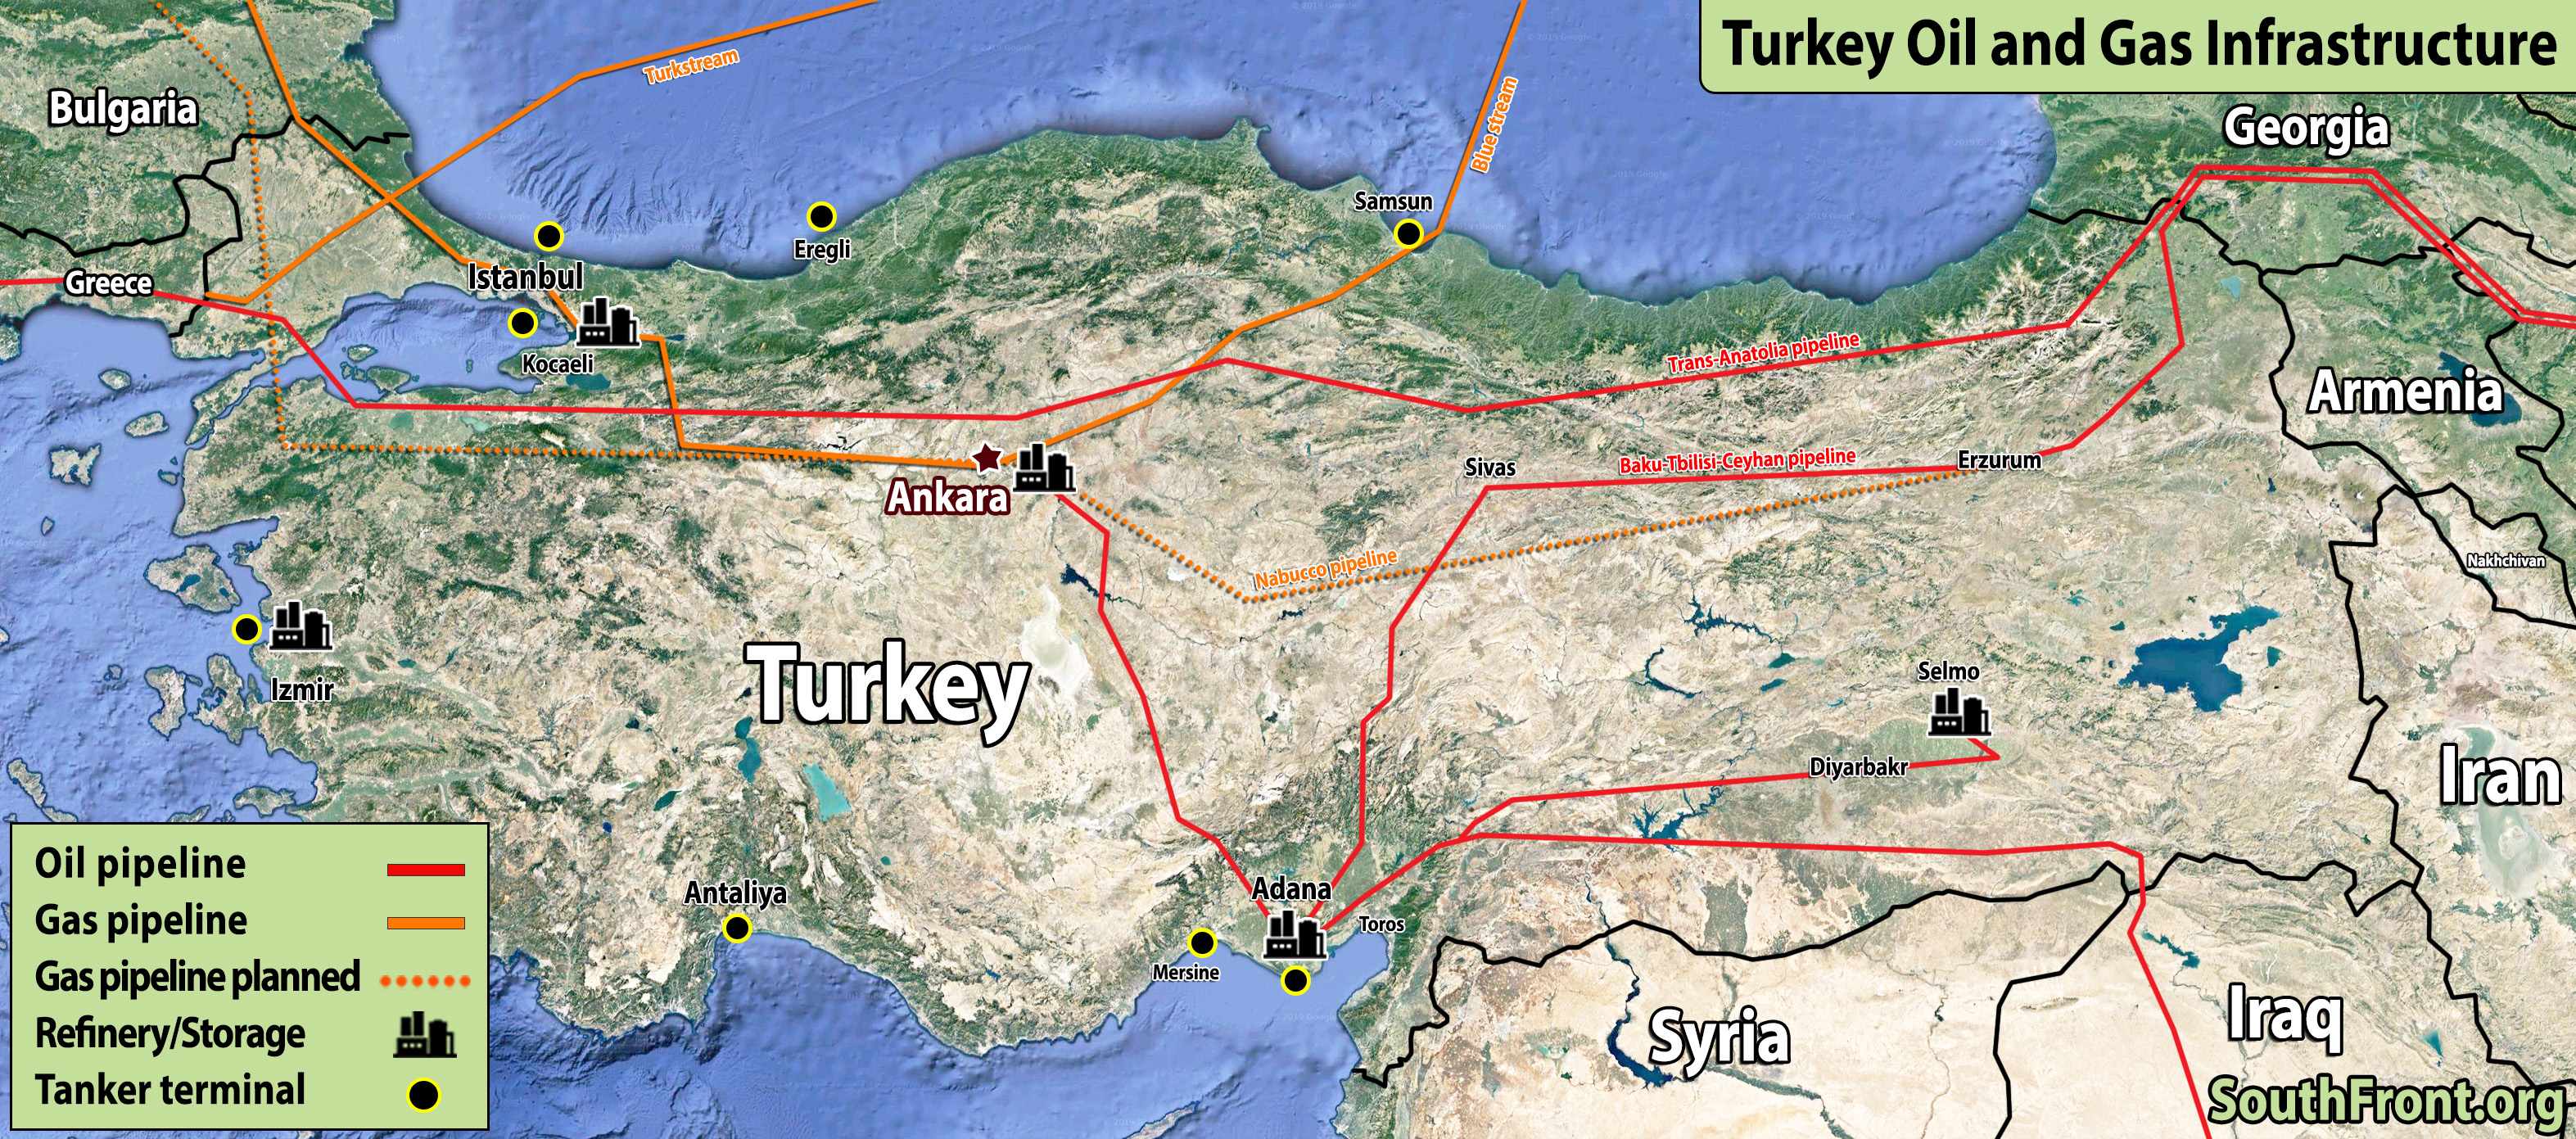 Is Turkey Pursuing Nuclear Weapons Or Not?